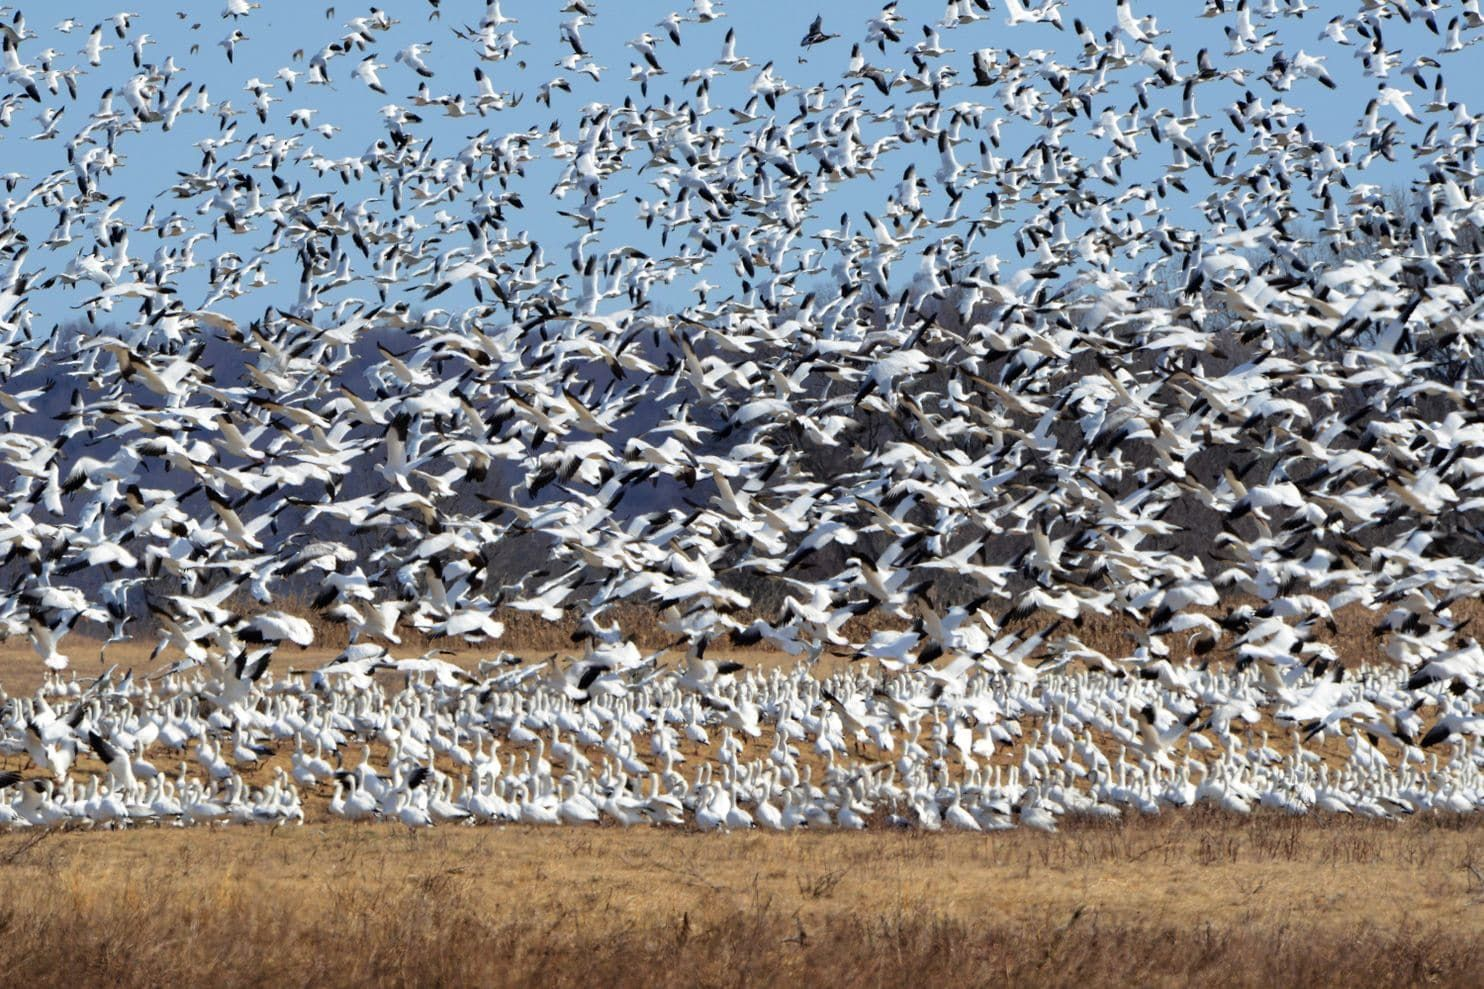 Migrating snow geese are a beautiful sight but a